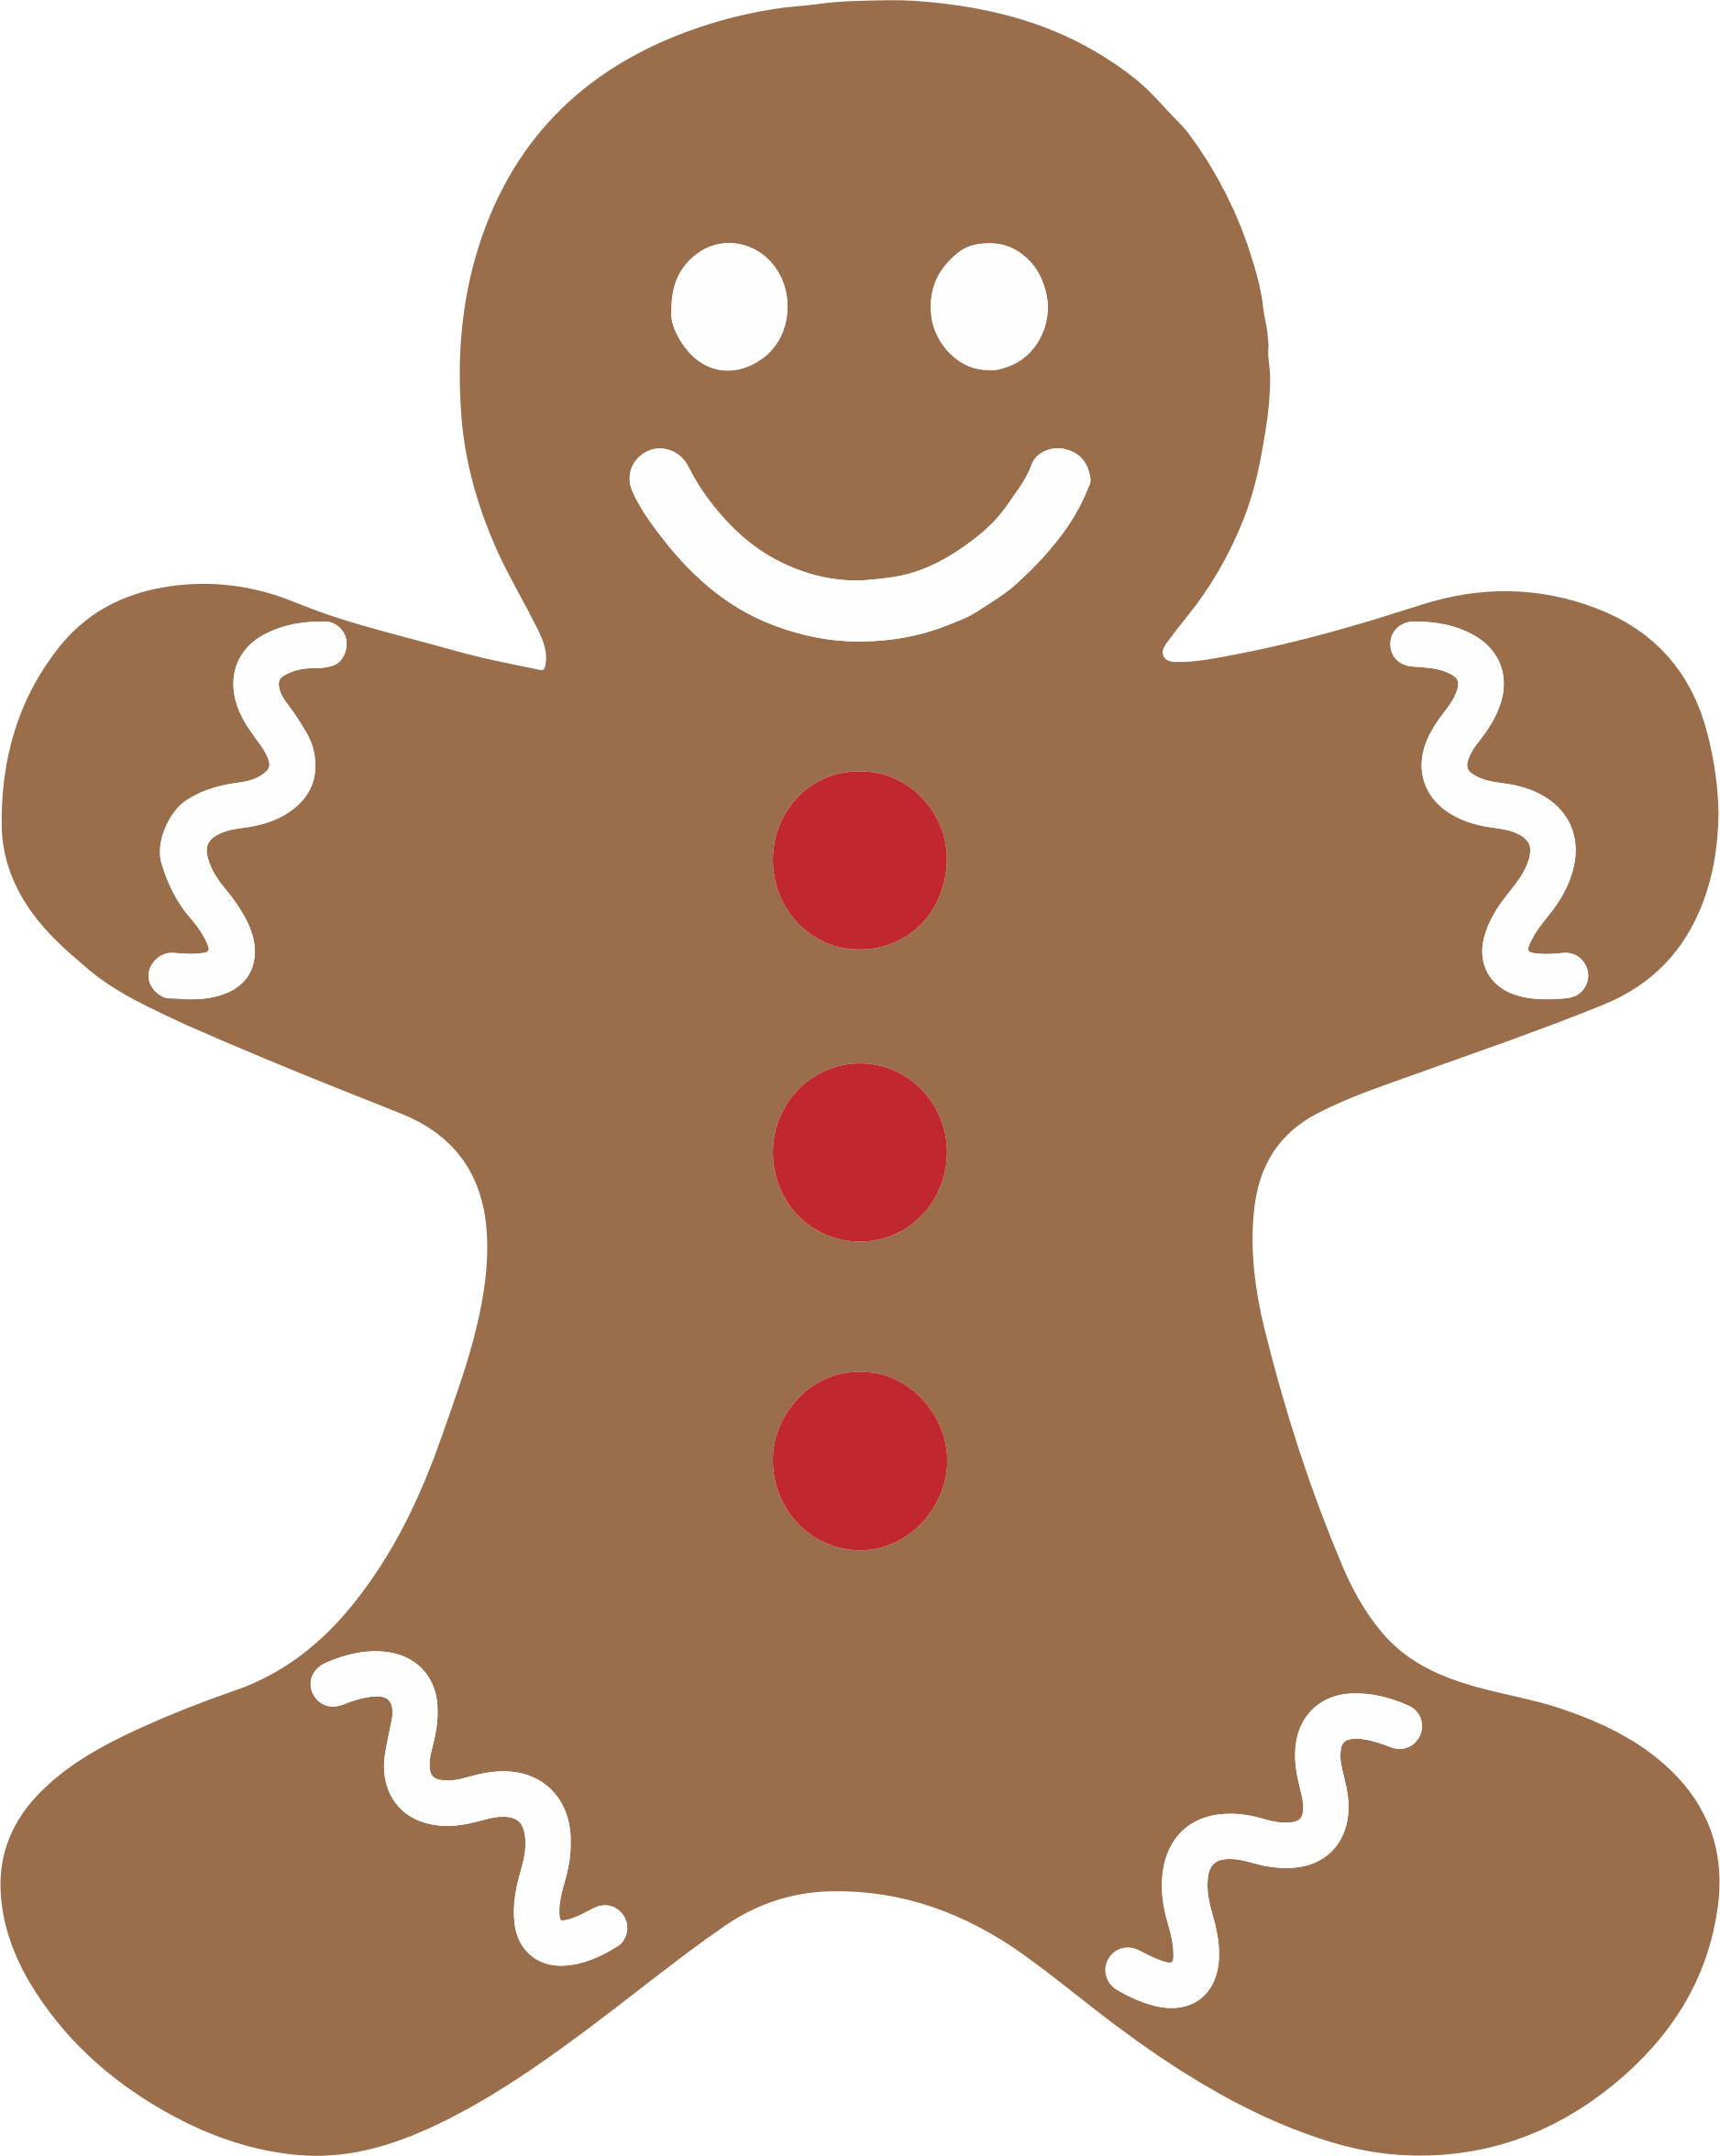 1876x2352 Gingerbread Man By Gdj Images Gingerbread Man